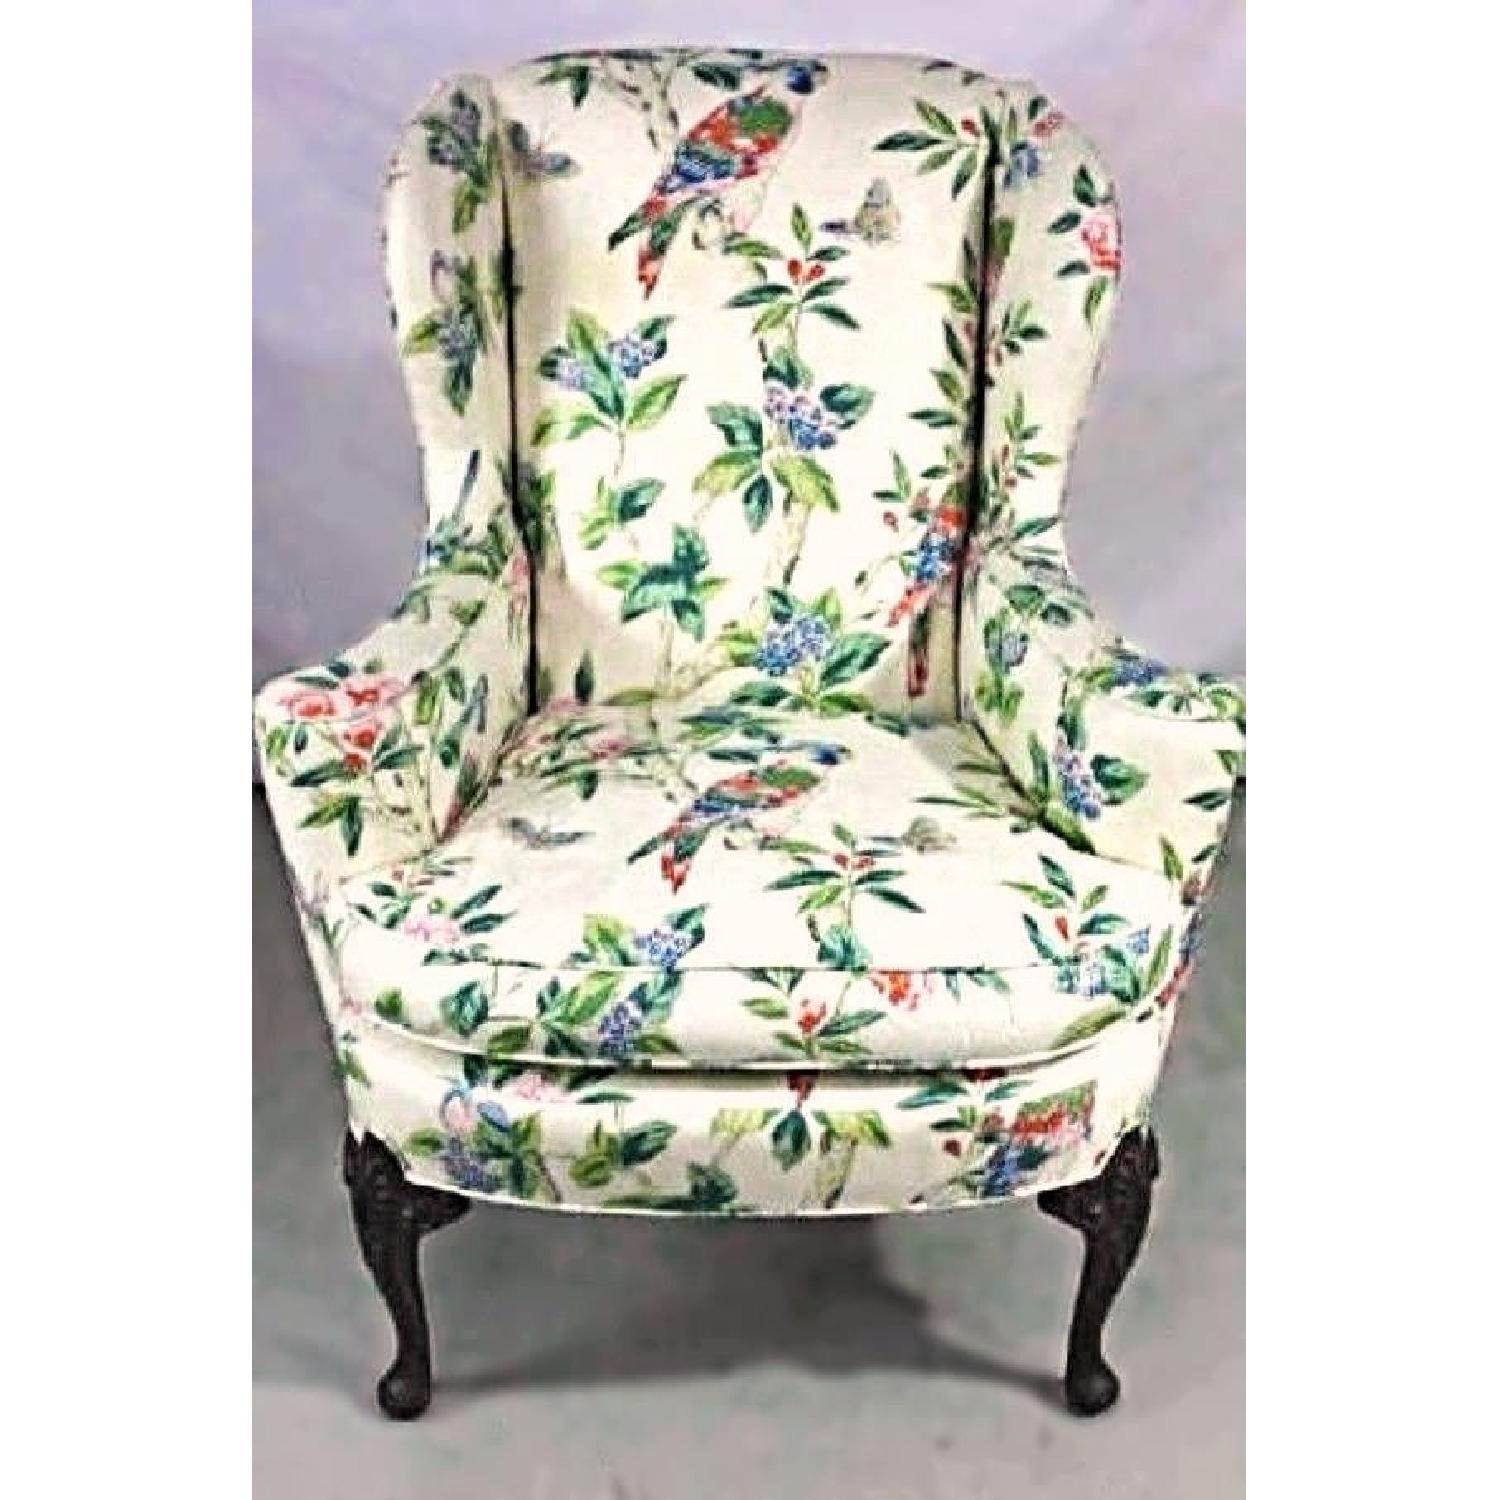 Parrot Exotic Upholstered Wingback Armchair & Ottoman-1